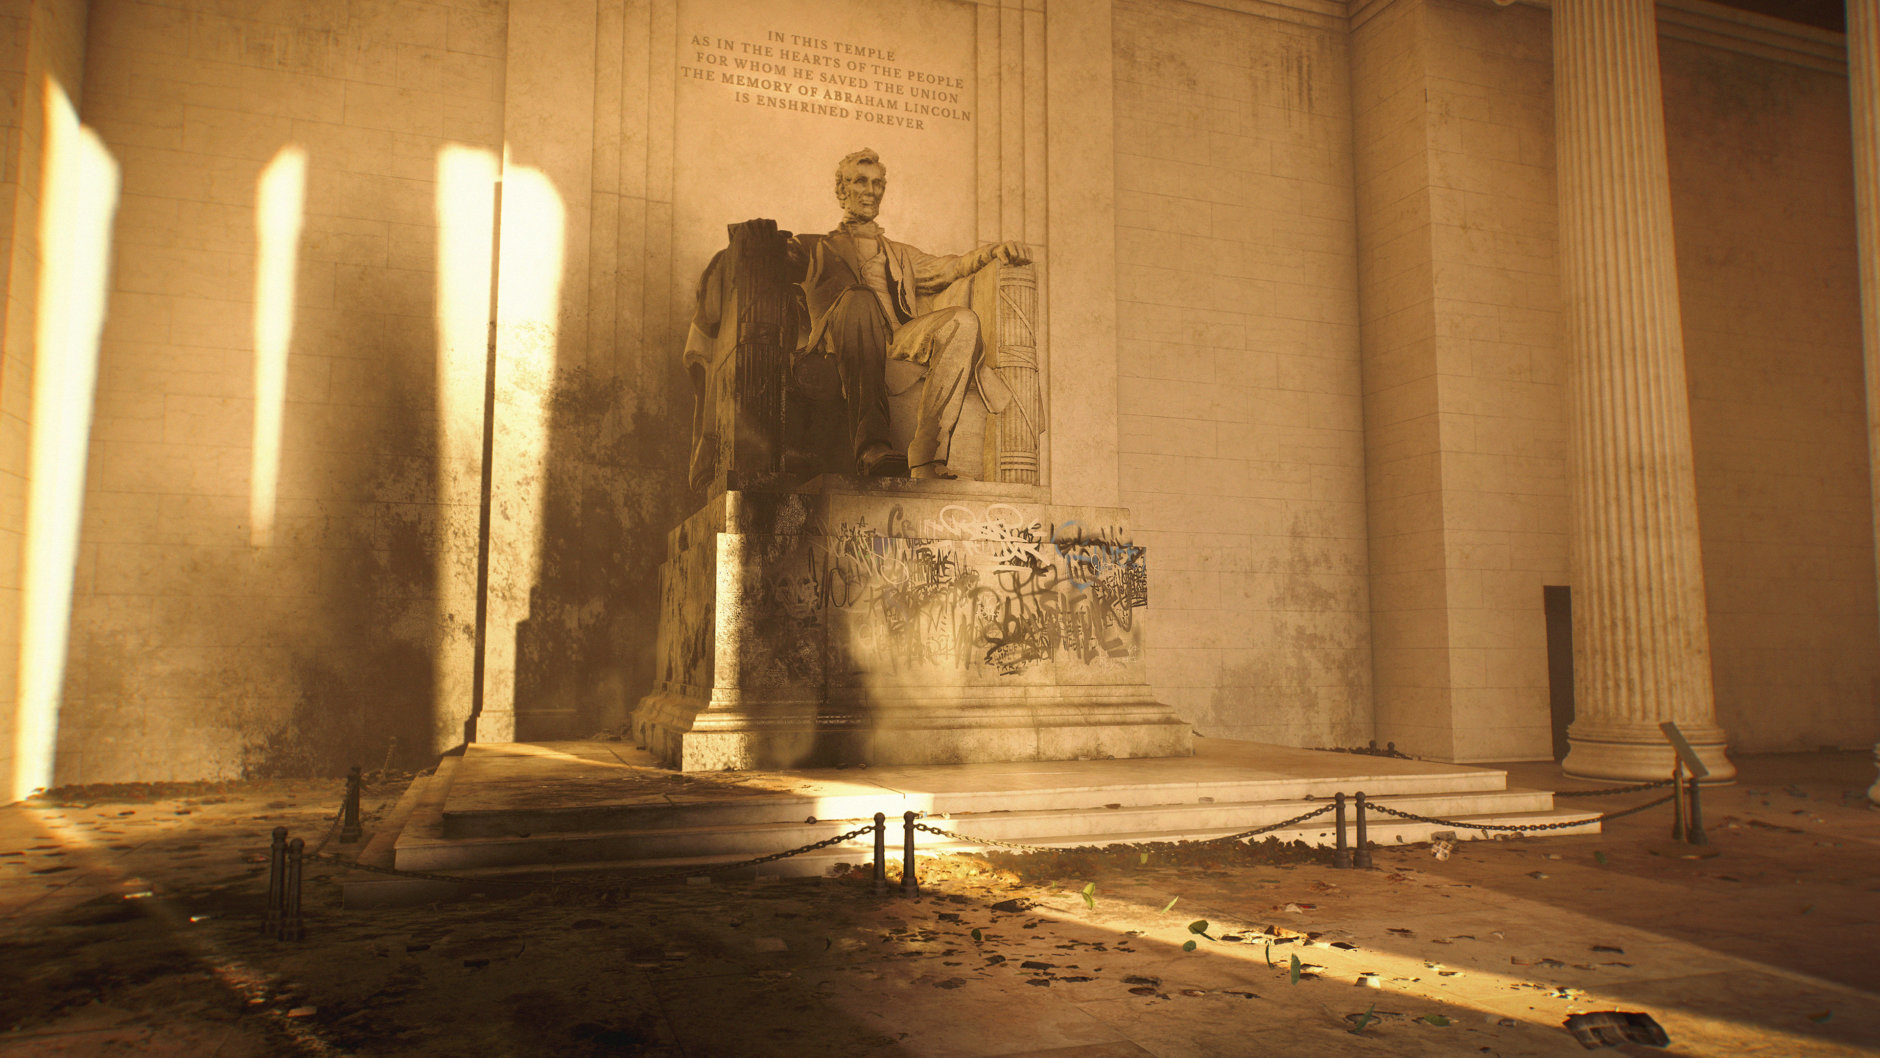 The Lincoln Memorial has seen better days in Division 2. (Courtesy Ubisoft/Massive)